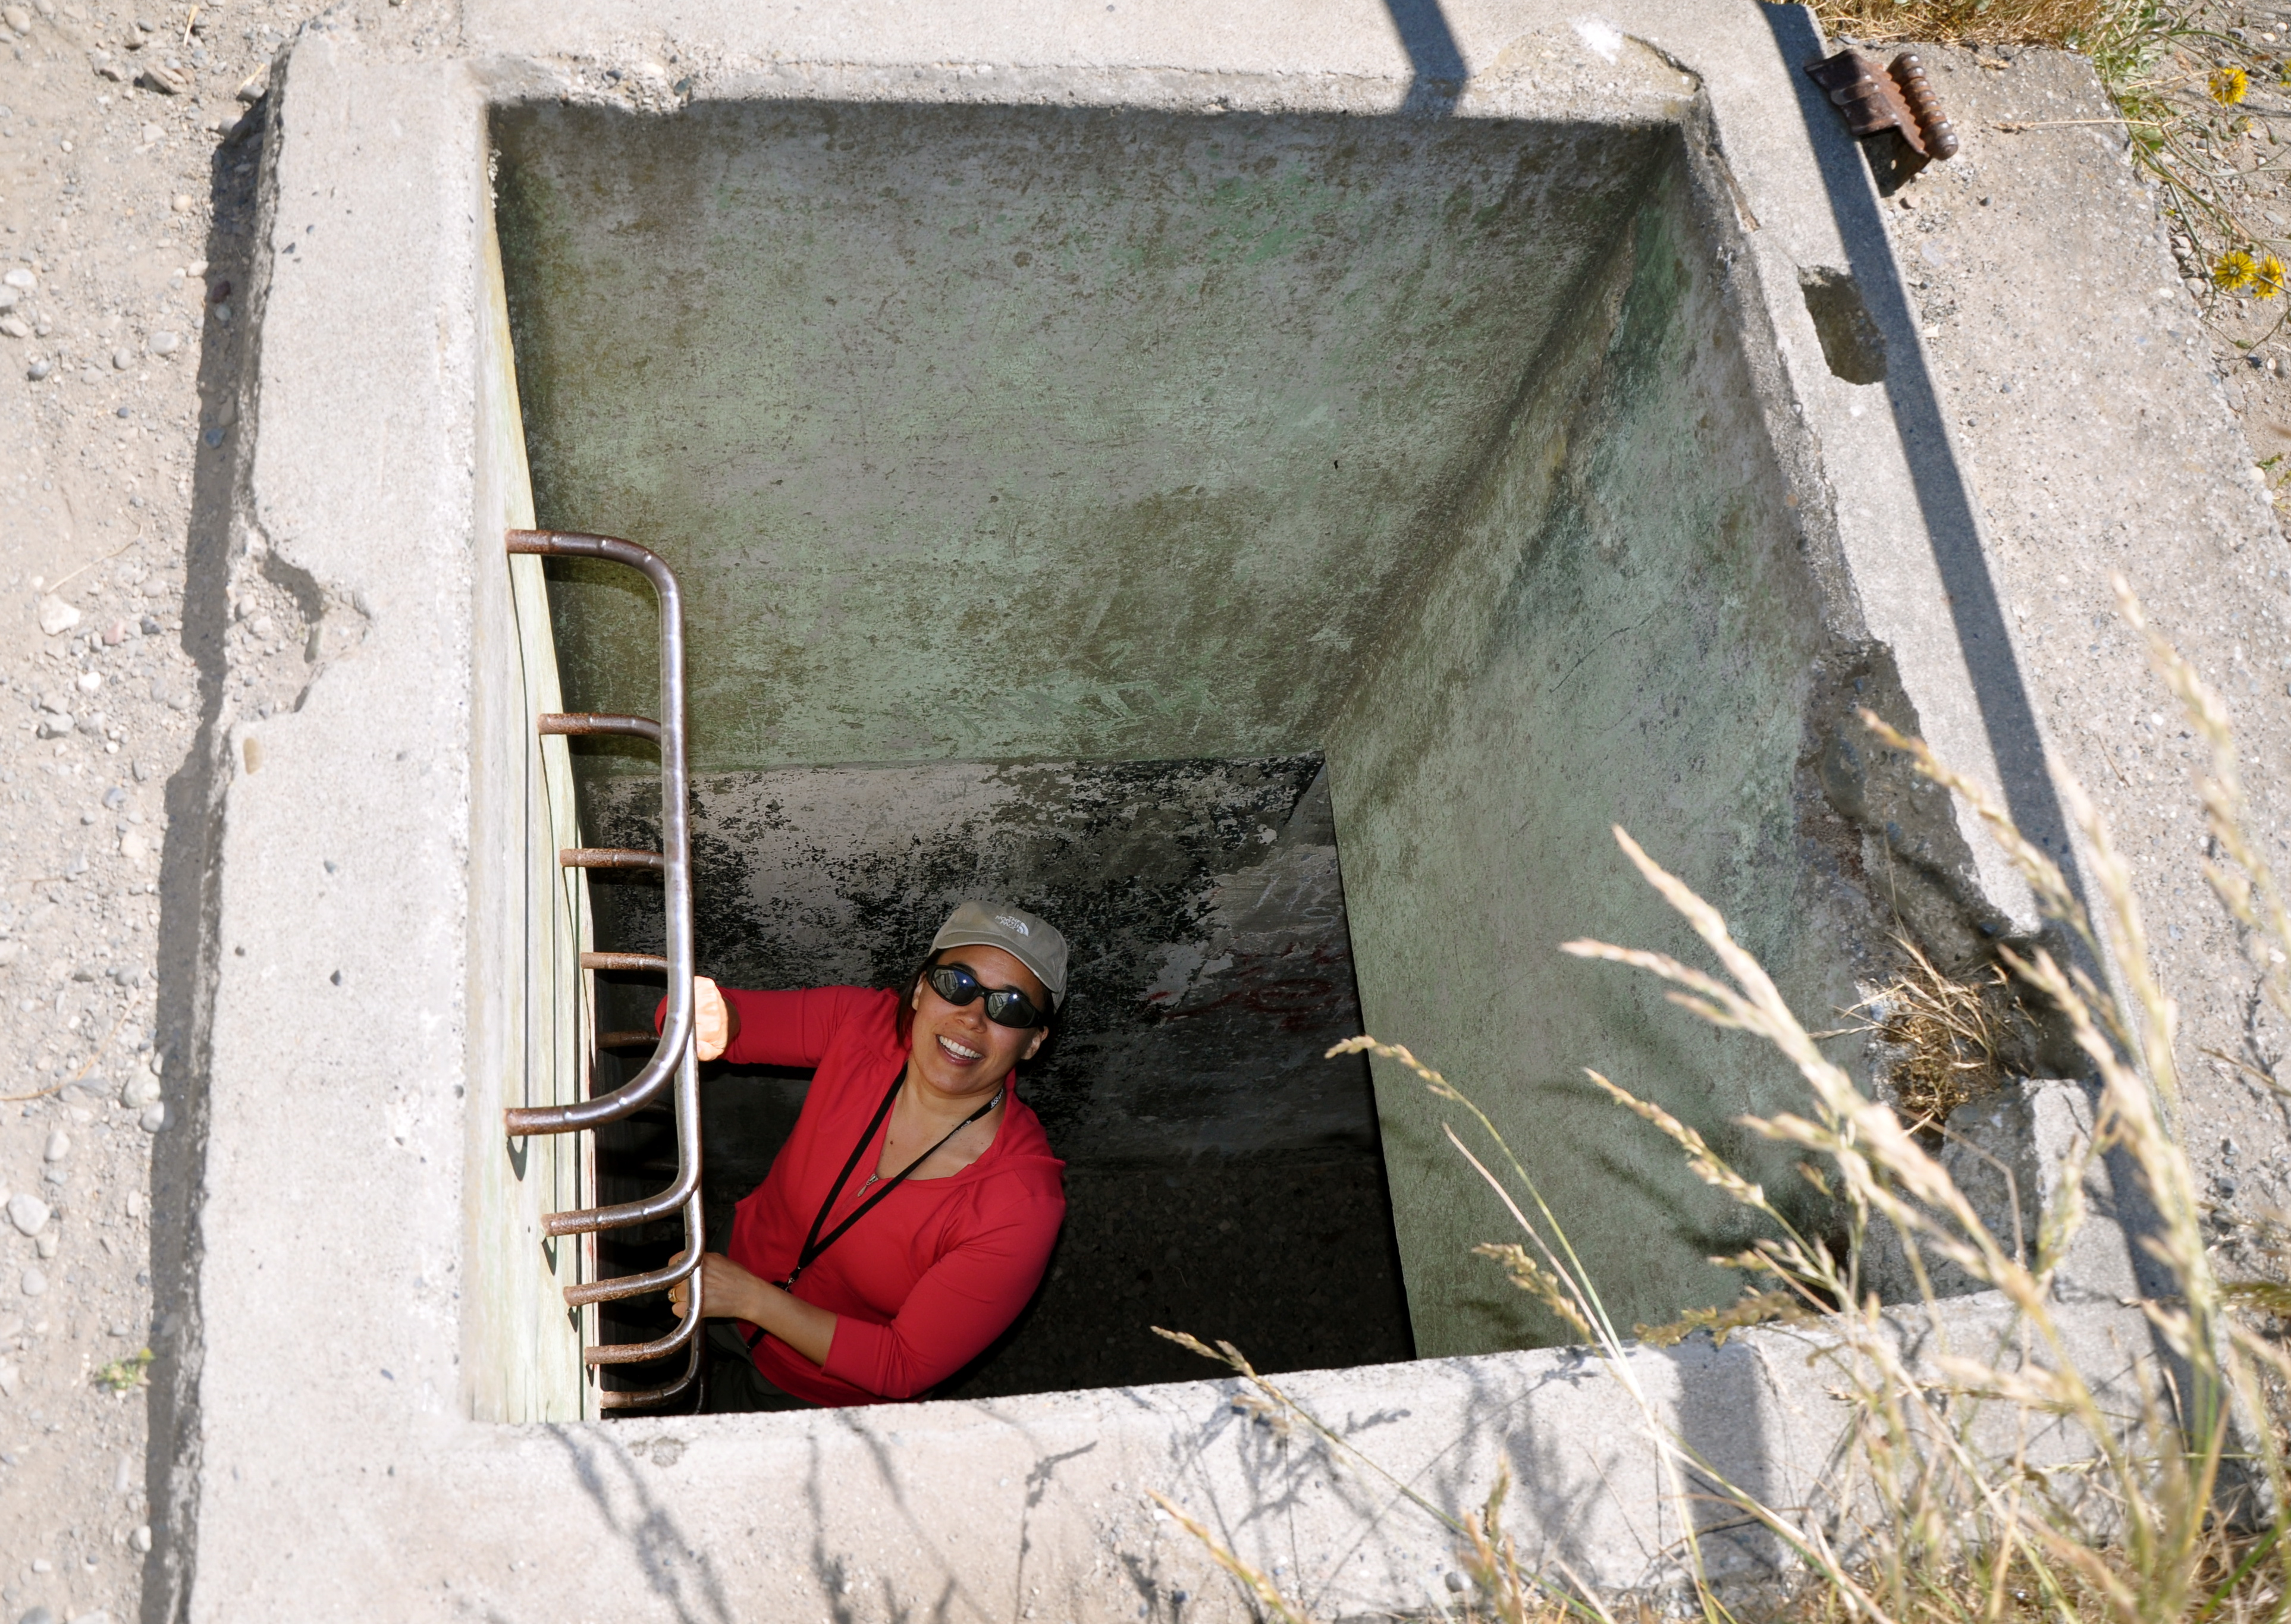 Kristina climbing into the old bunkers of Fort Ebey on Whidbey Island. Monday 4 July 2011.